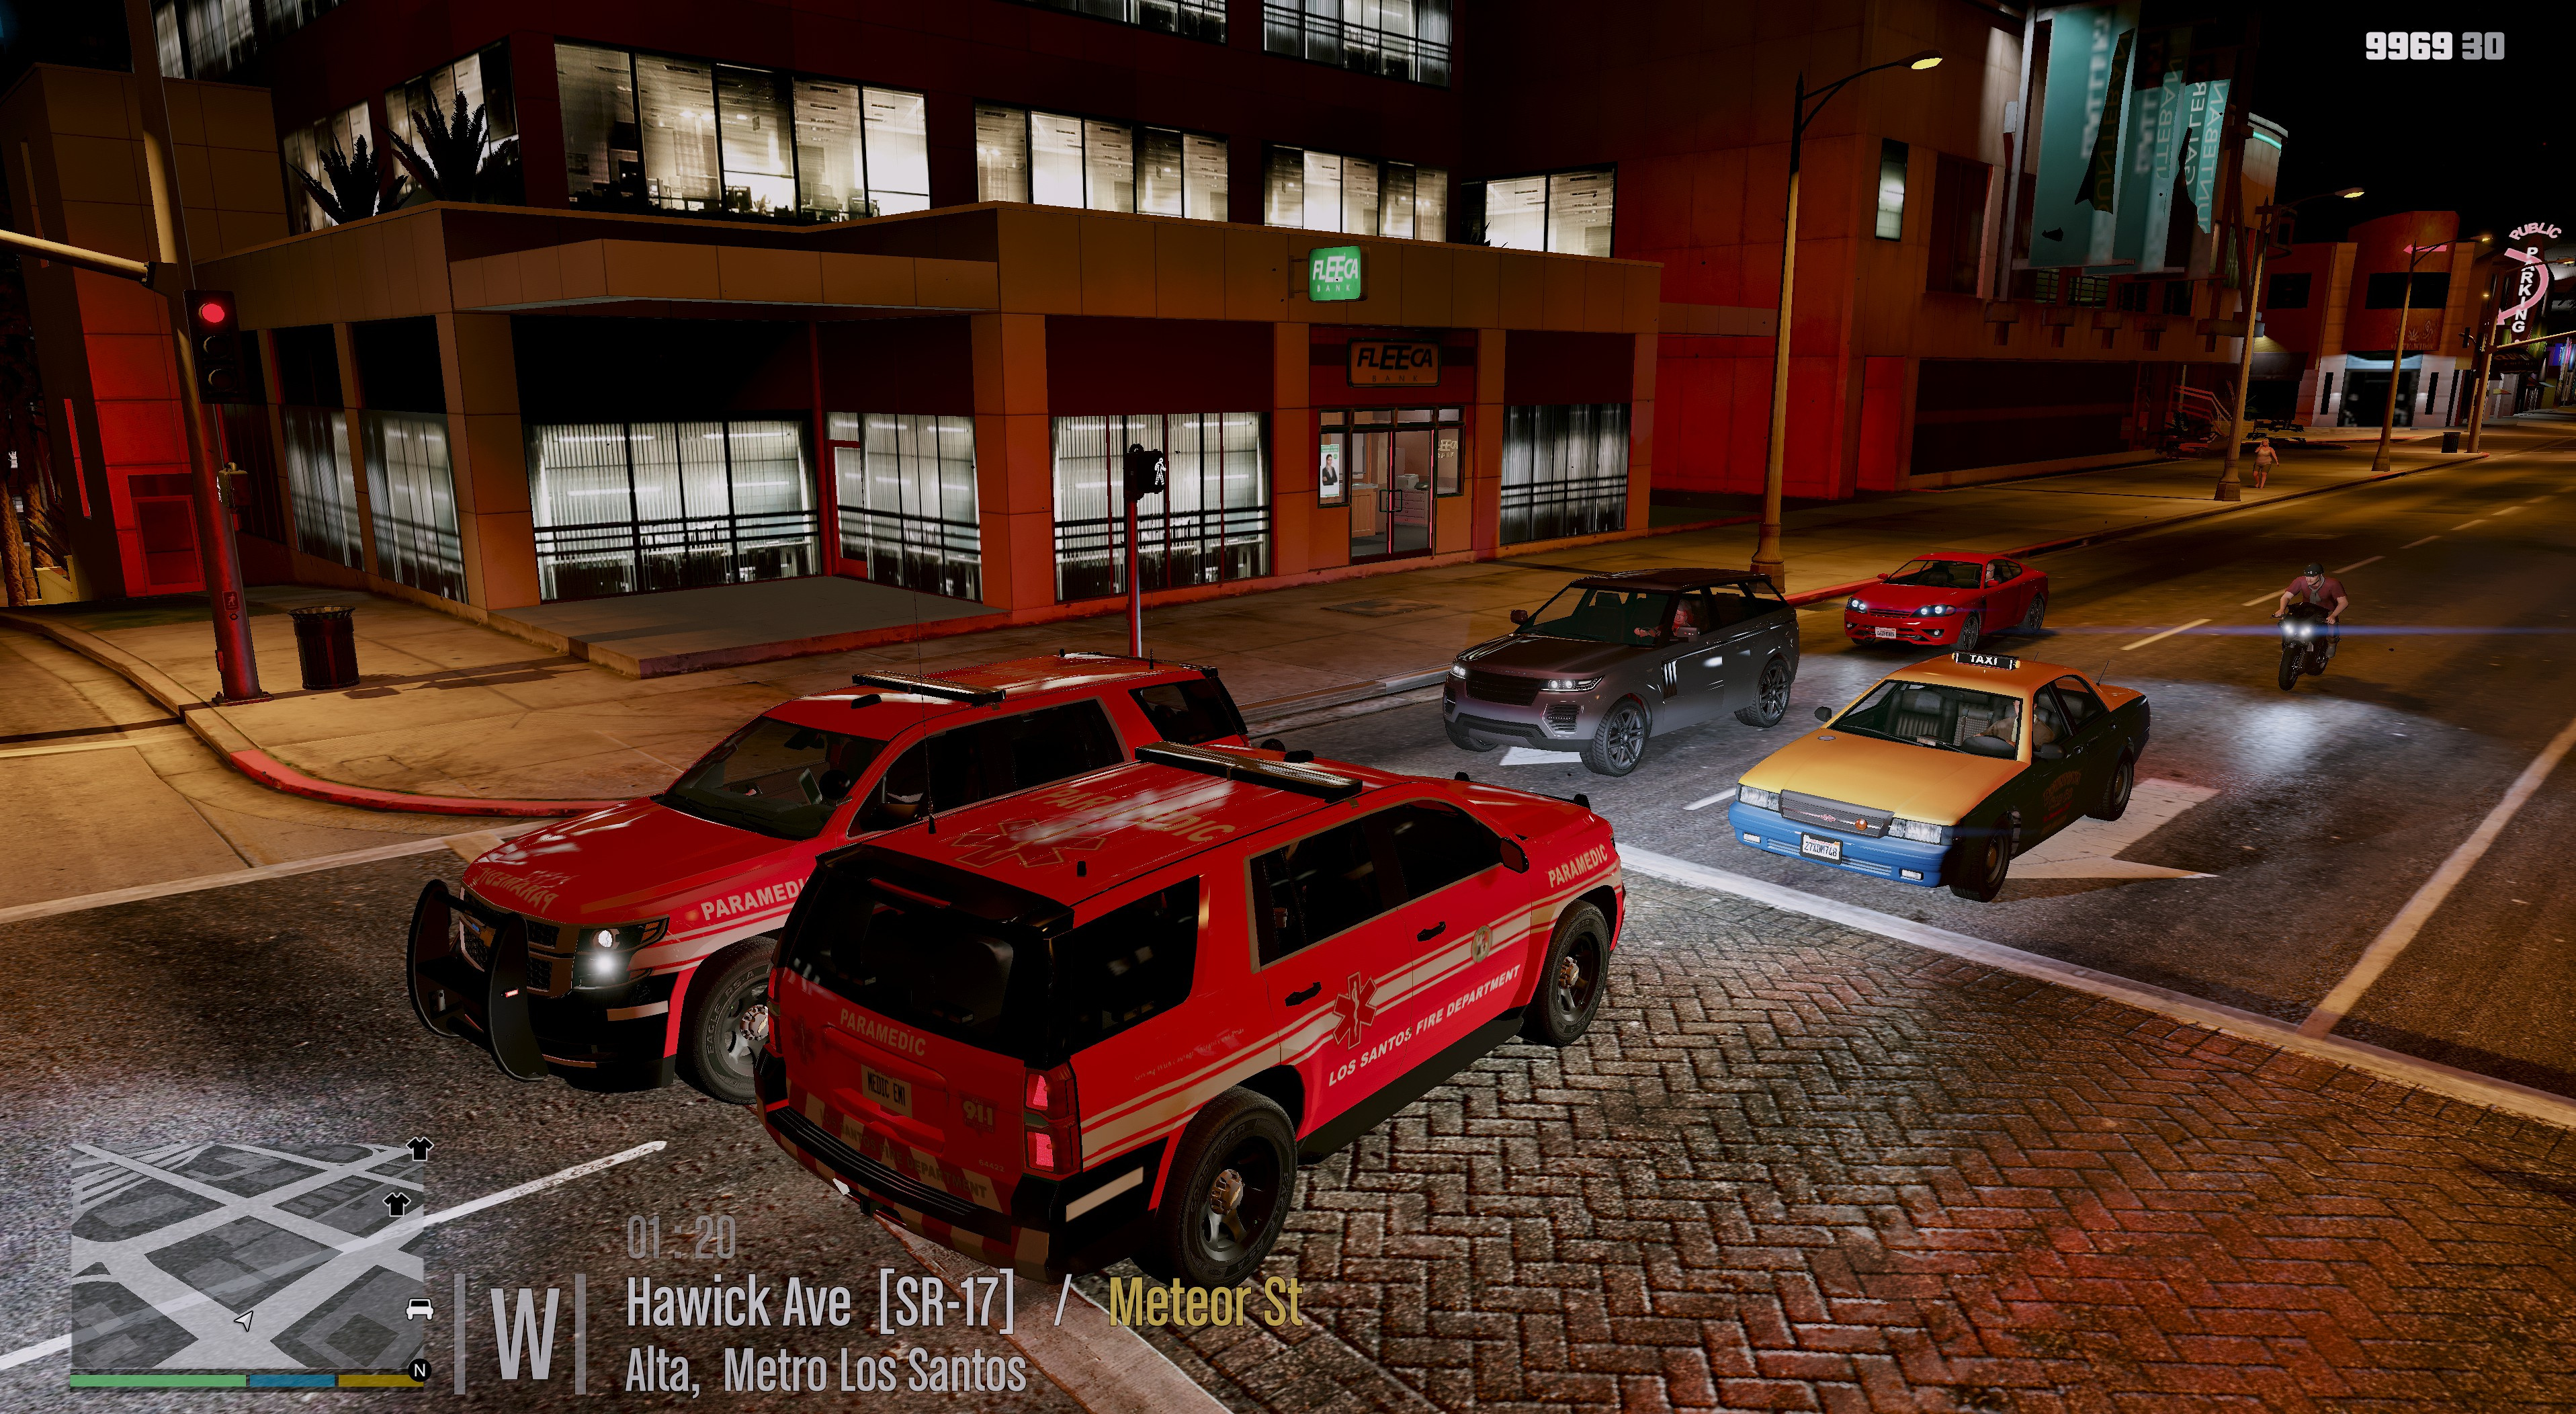 FD/EMS Skin Pack and light conversion for 2015 Tahoe - GTA5